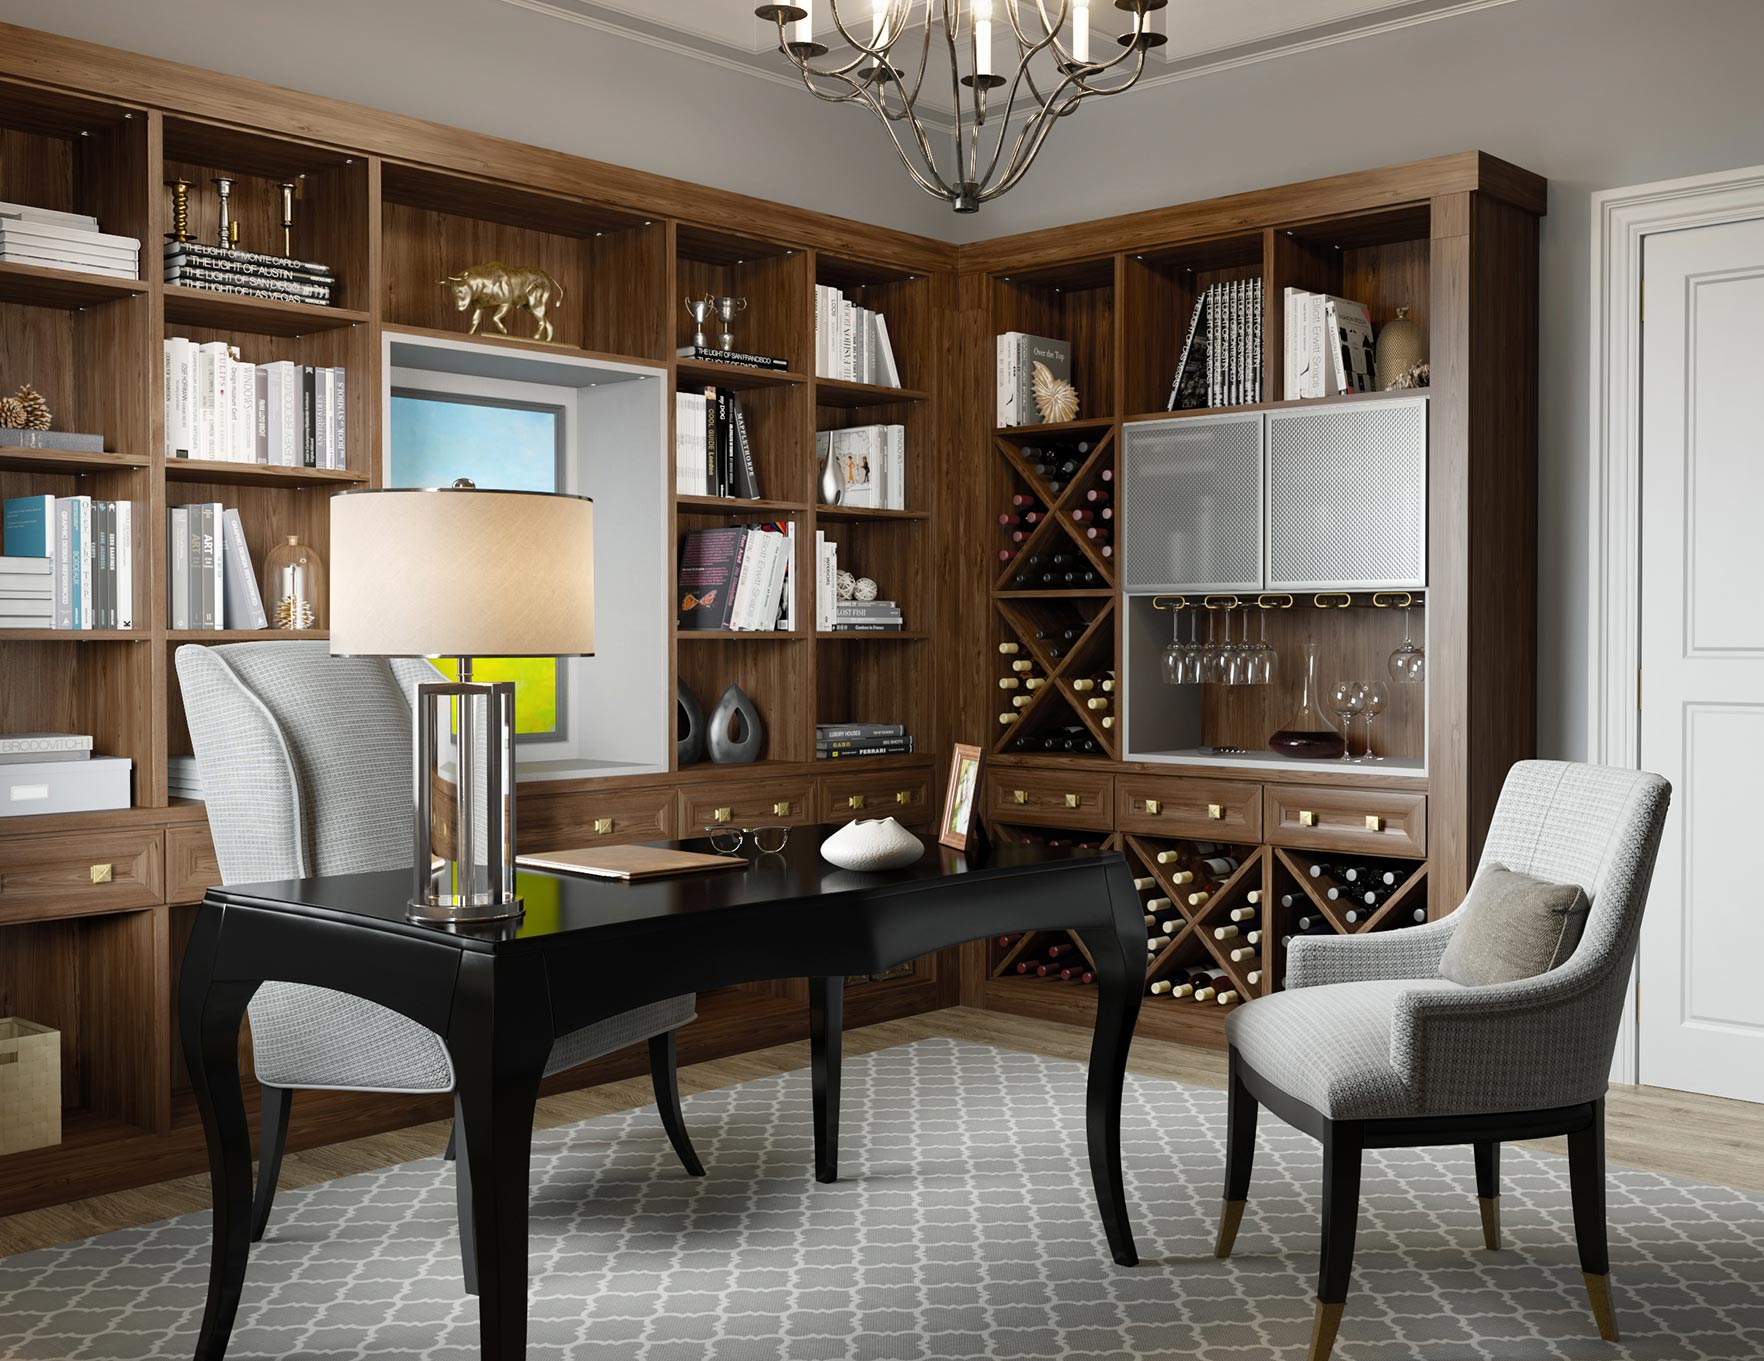 can you put a wine rack in living room furniture ideas for small storage cabinets custom racks california closets dark brown office and bar with shelving display cabinet